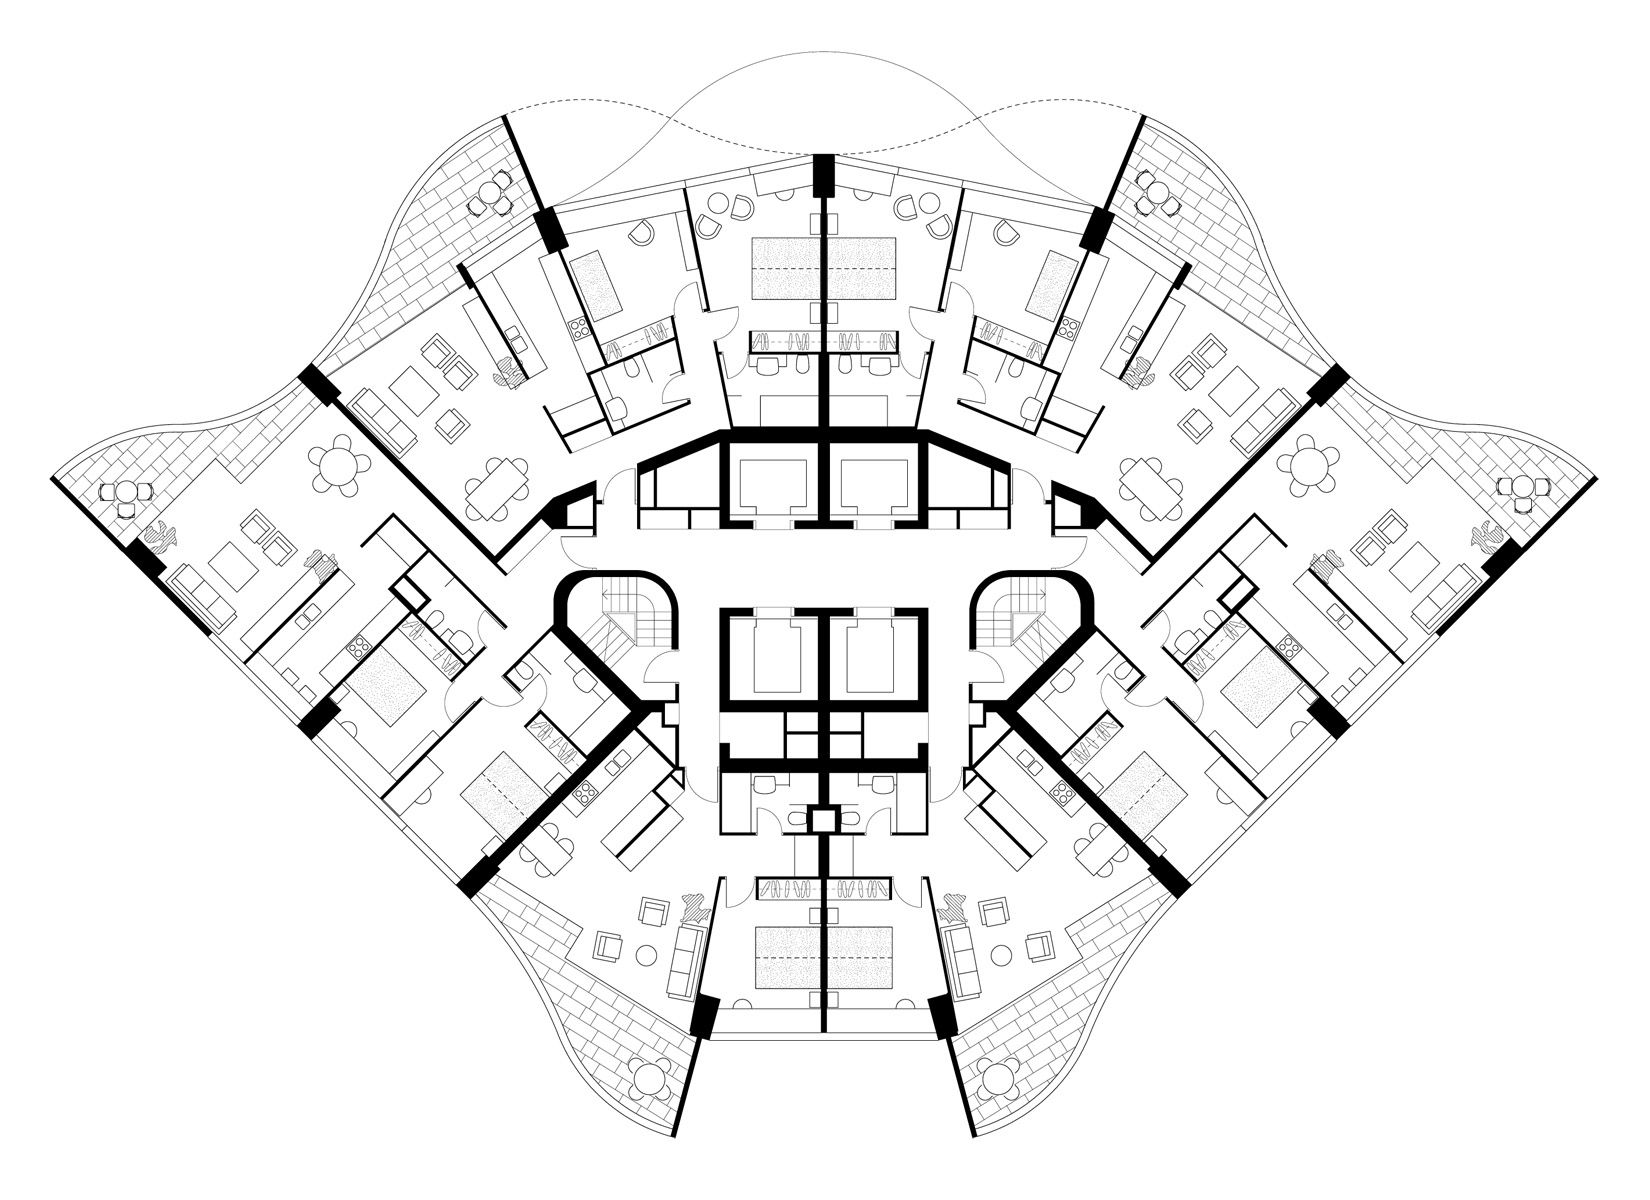 Penthouse Apartment Floor Plans Harry Seidler Associates